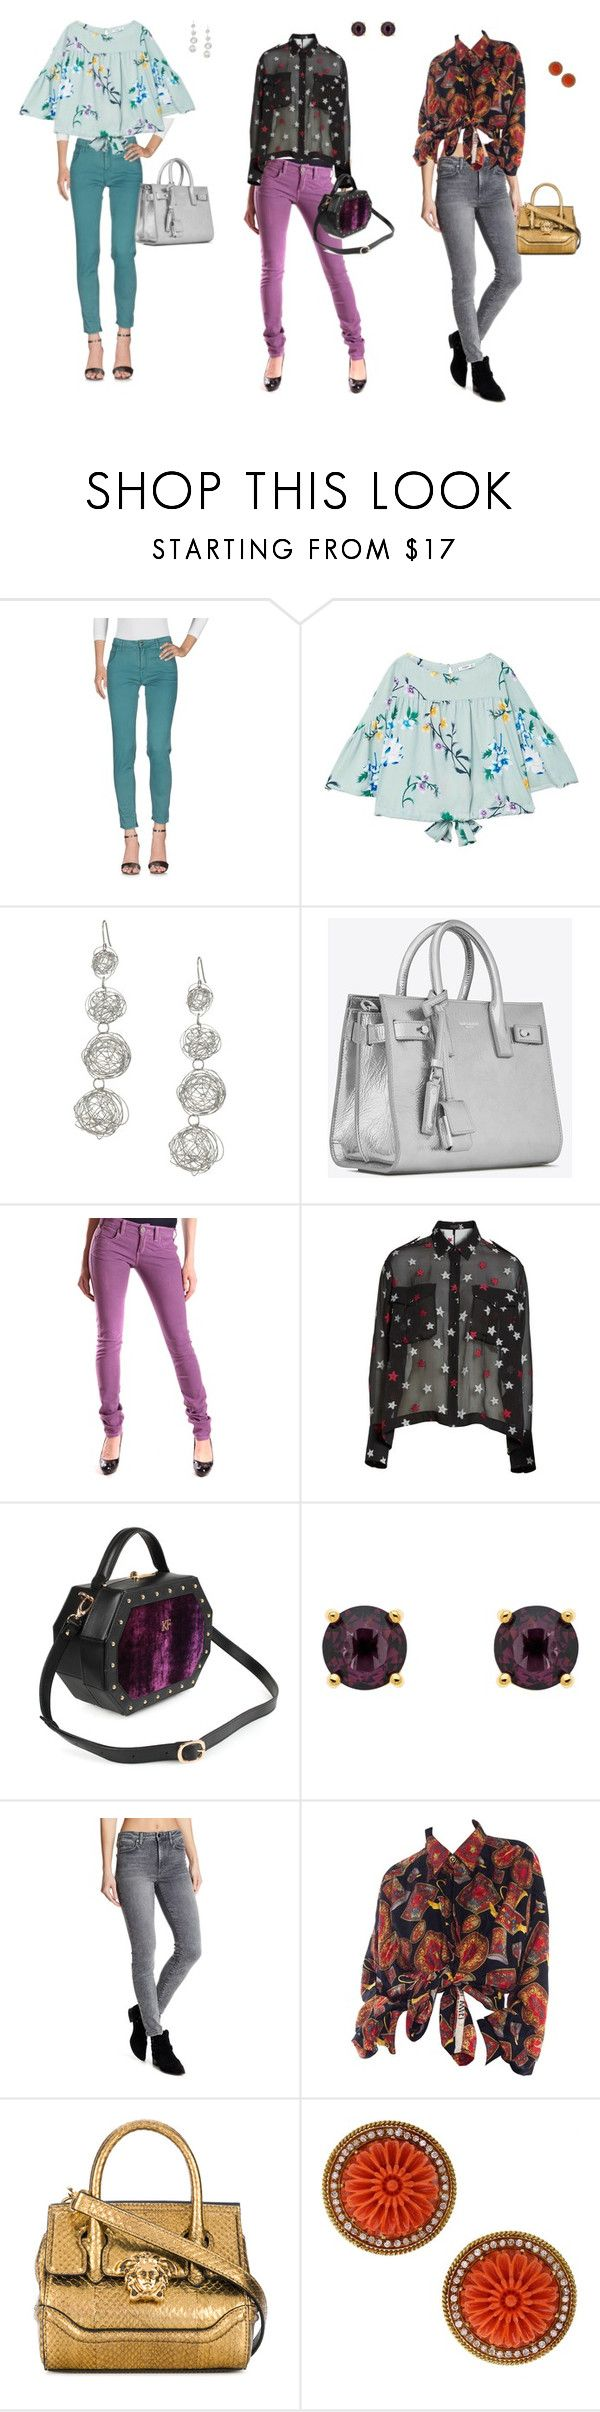 """Coffee With Friends"" by ladiminafashion on Polyvore featuring CYCLE, MANGO, Kenneth Jay Lane, Yves Saint Laurent, Pinko, rag & bone, Monet, Joe's Jeans and Versace"